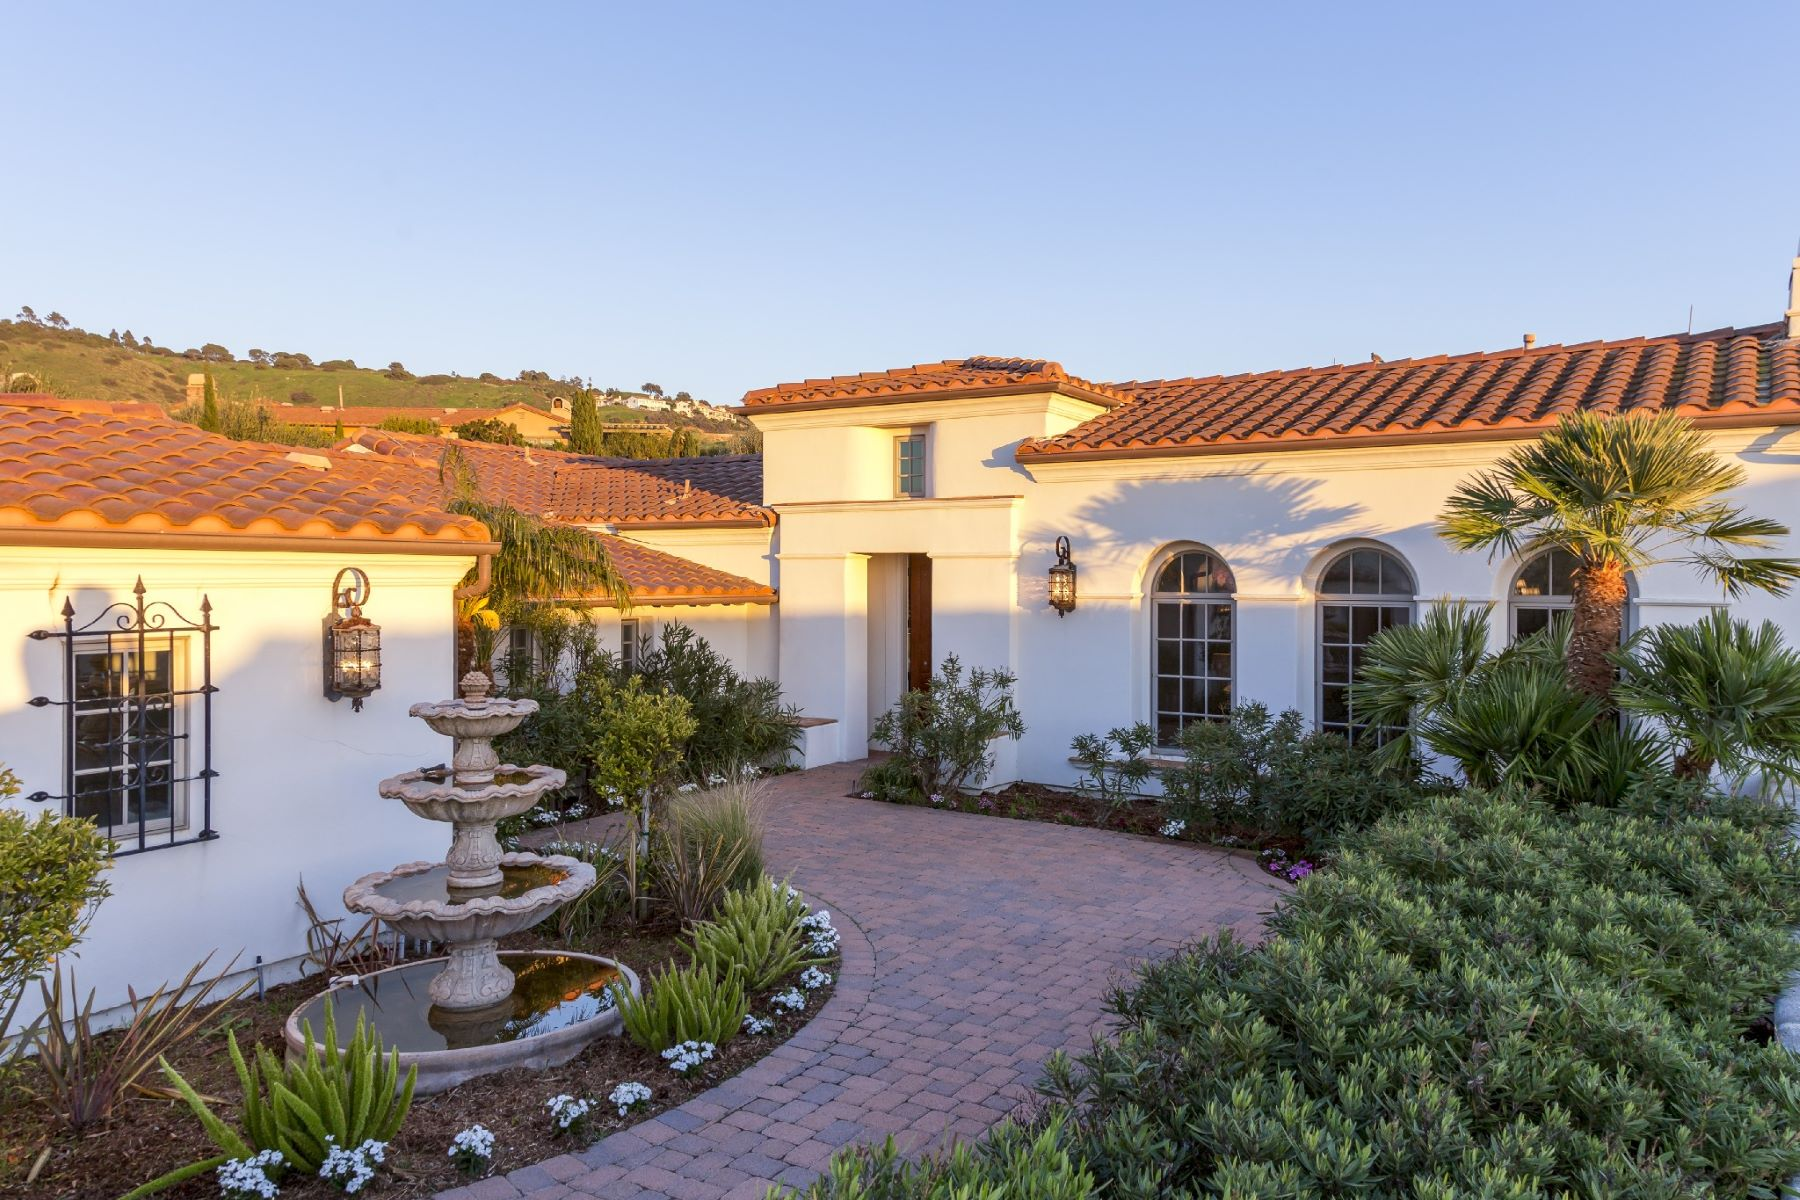 واحد منزل الأسرة للـ Sale في 50 Pacifica Del Mar Rancho Palos Verdes, California, 90275 United States